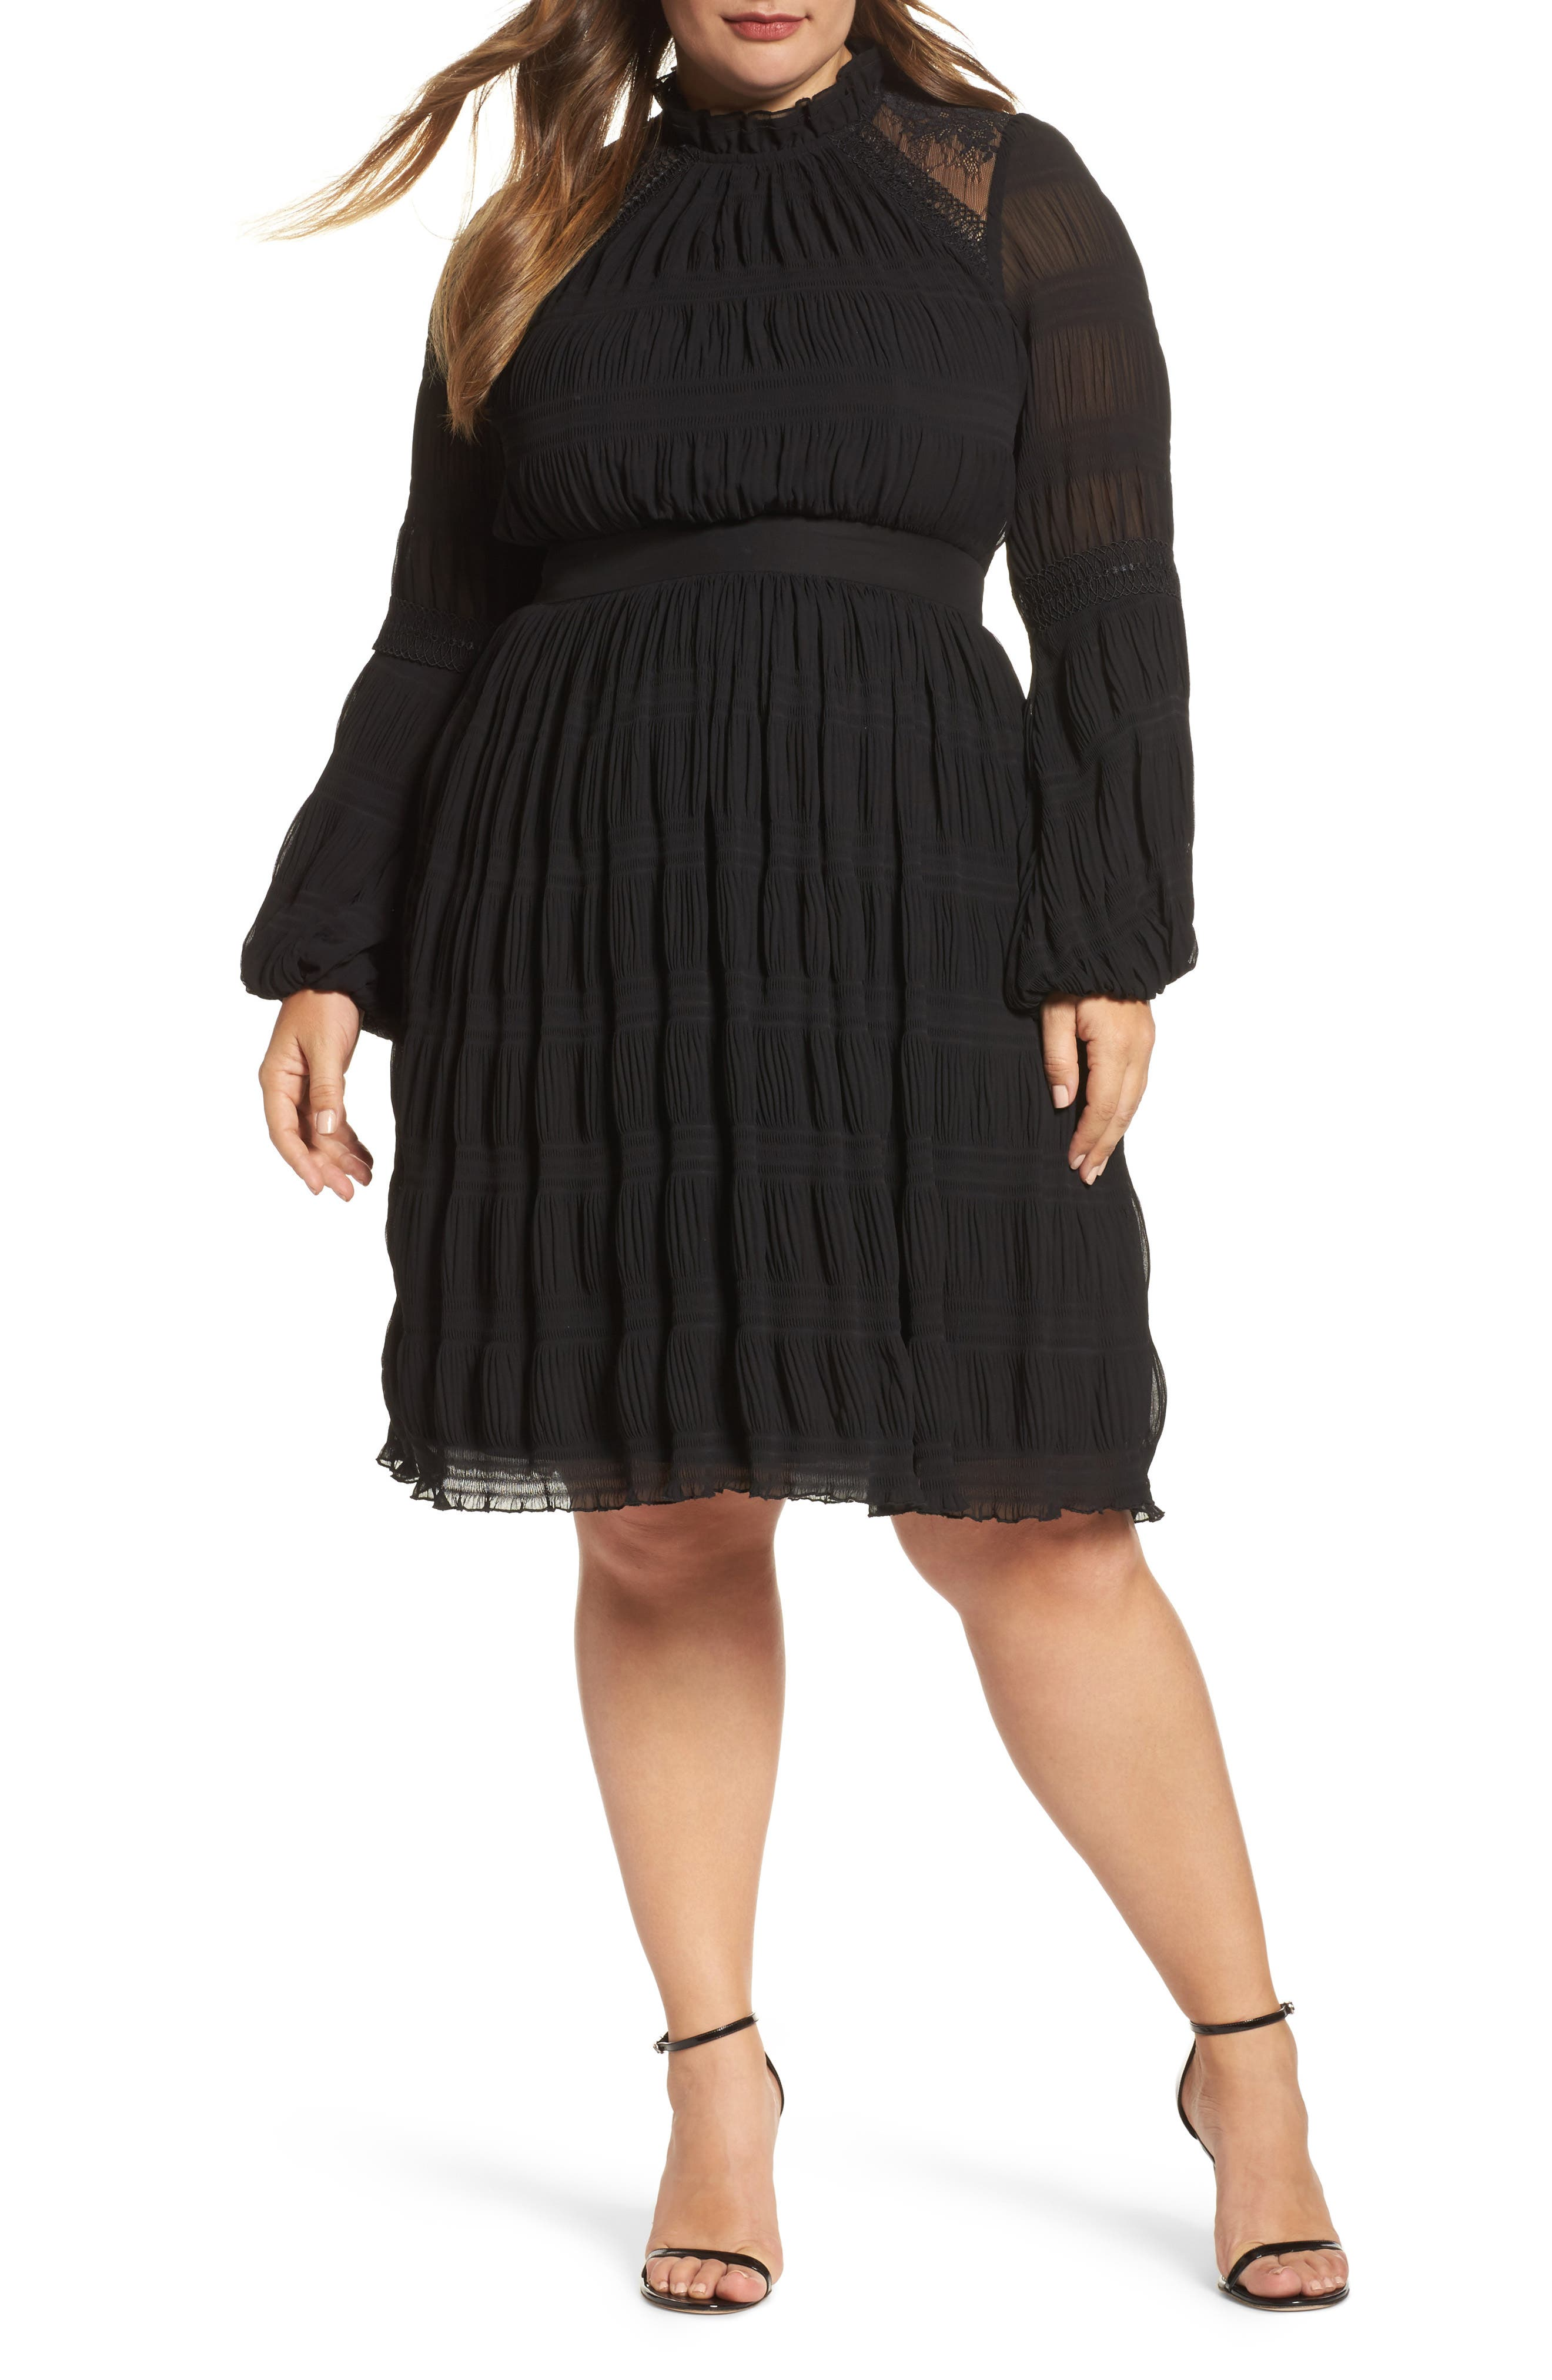 Alternate Image 1 Selected - LOST INK Lace Back Skater Dress (Plus Size)